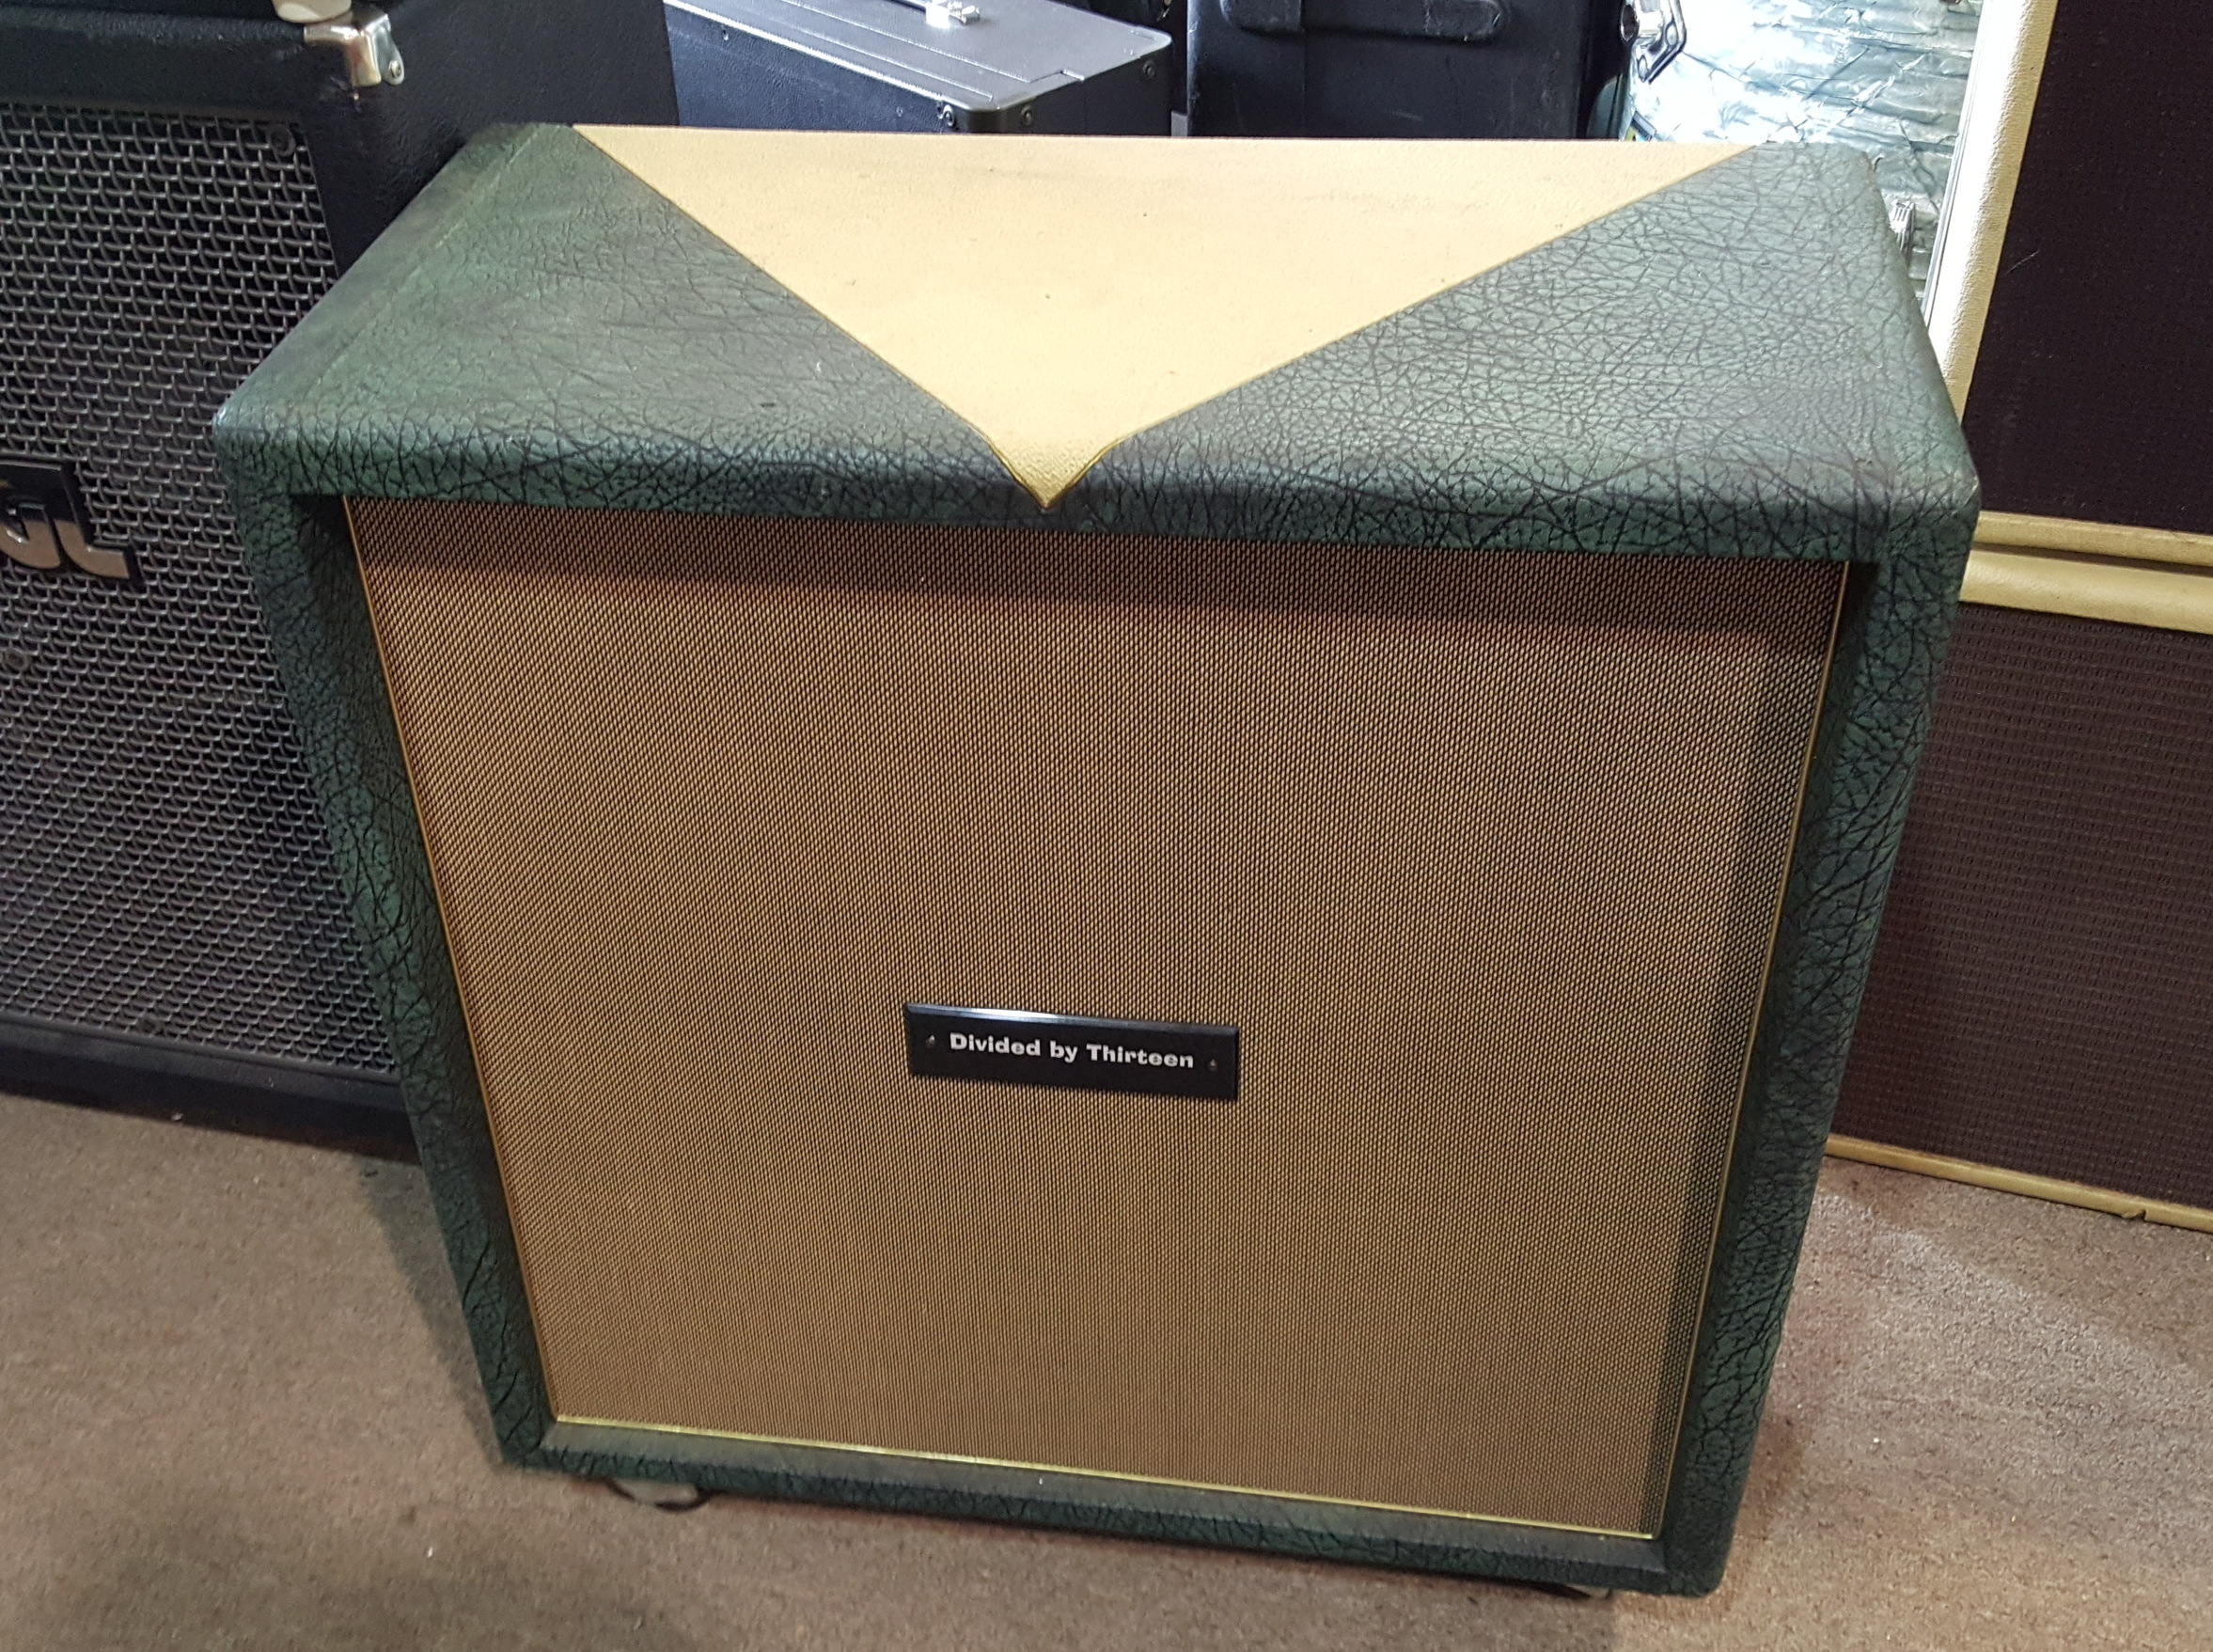 DIVIDED BY 13 4X12 SPEAKER CABINET W/ CELESTION G12H30S